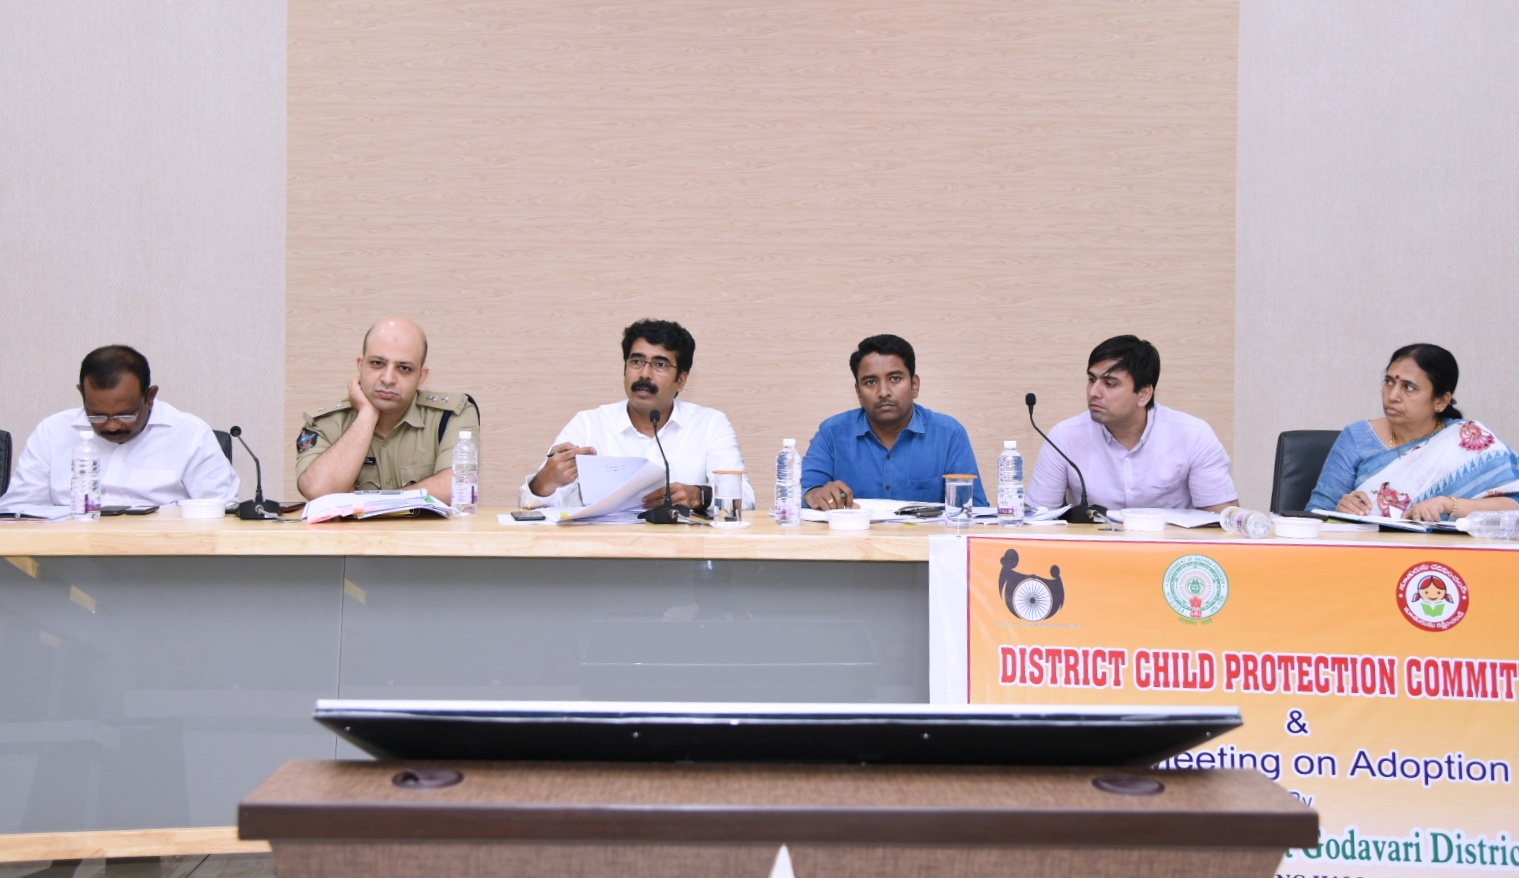 Child Protection Committee Meeting